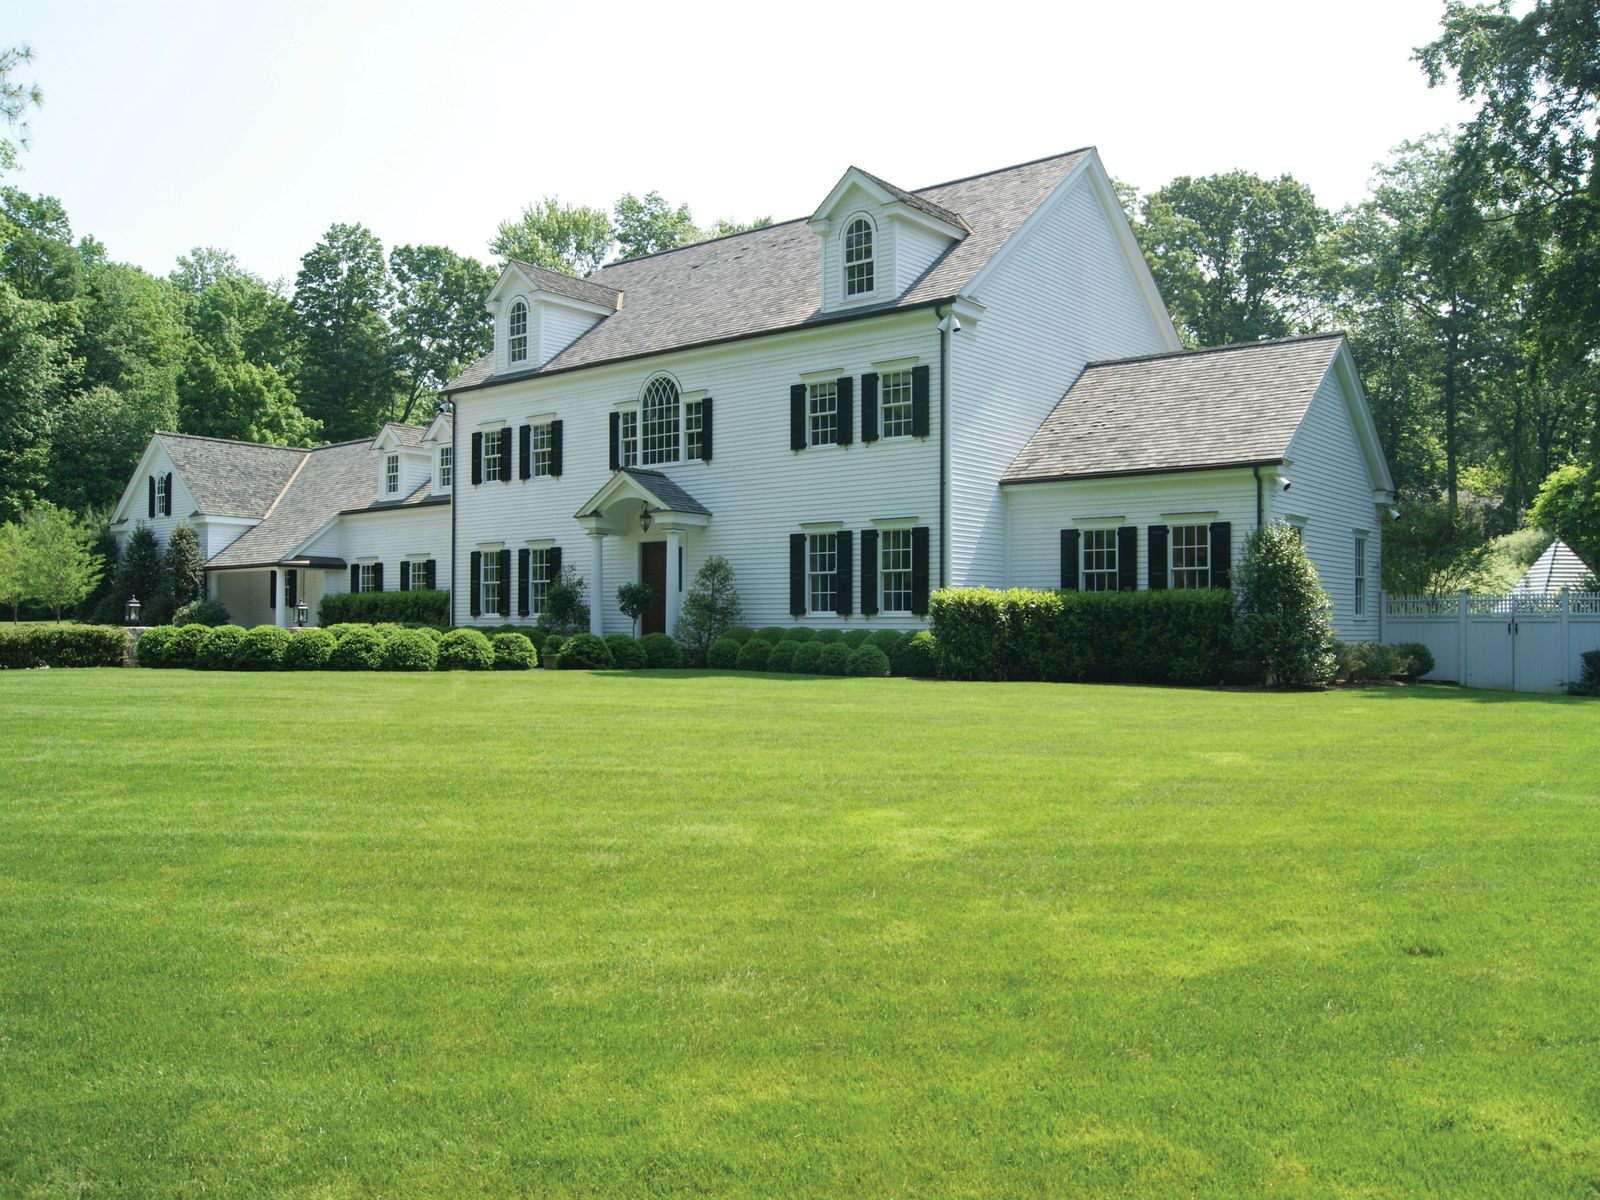 Chic Mid-Country Renovation, Greenwich CT Single Family Home - Greenwich Real Estate